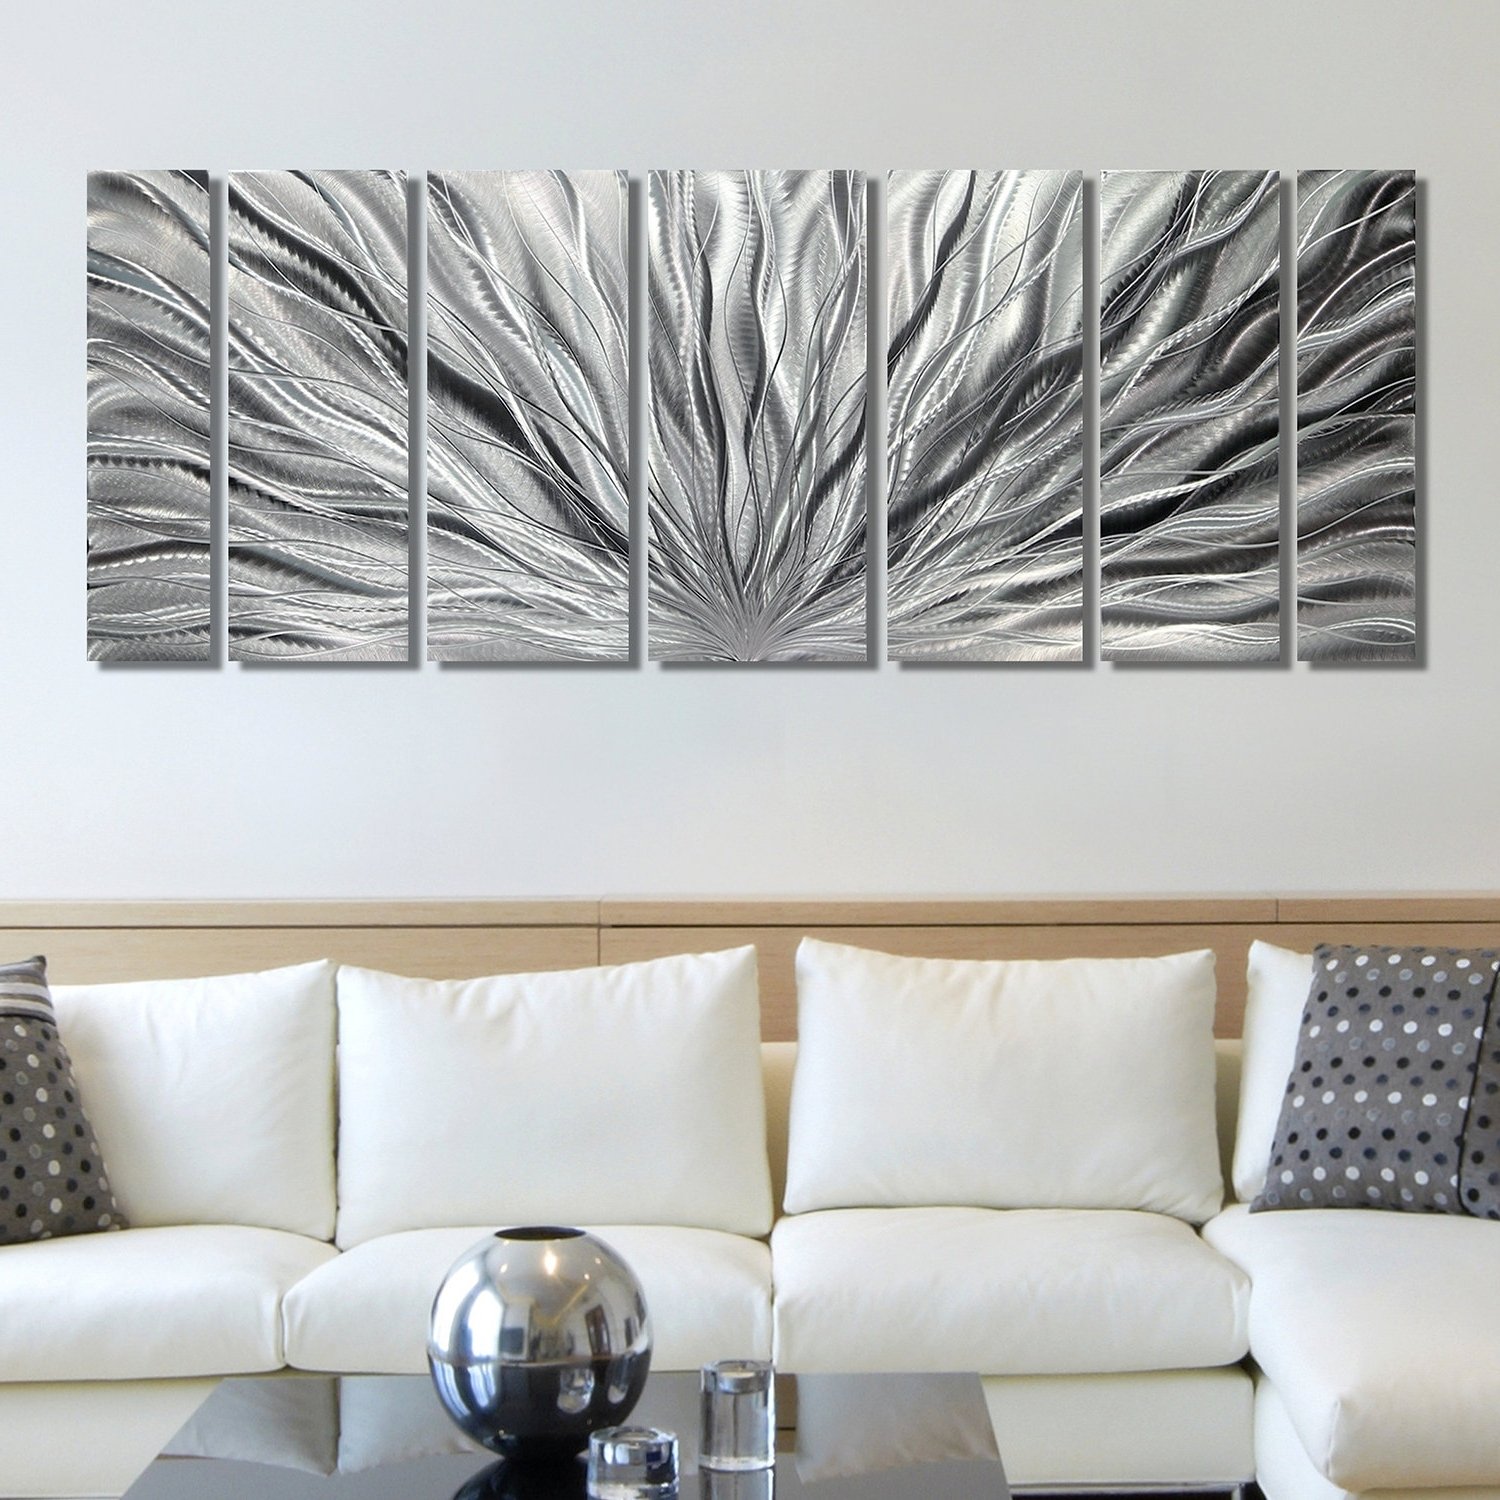 Silver Wall Art Intended For Newest Silver Wall Art Cool Wall Decor On Sale – Wall Decoration And Wall (Gallery 17 of 20)